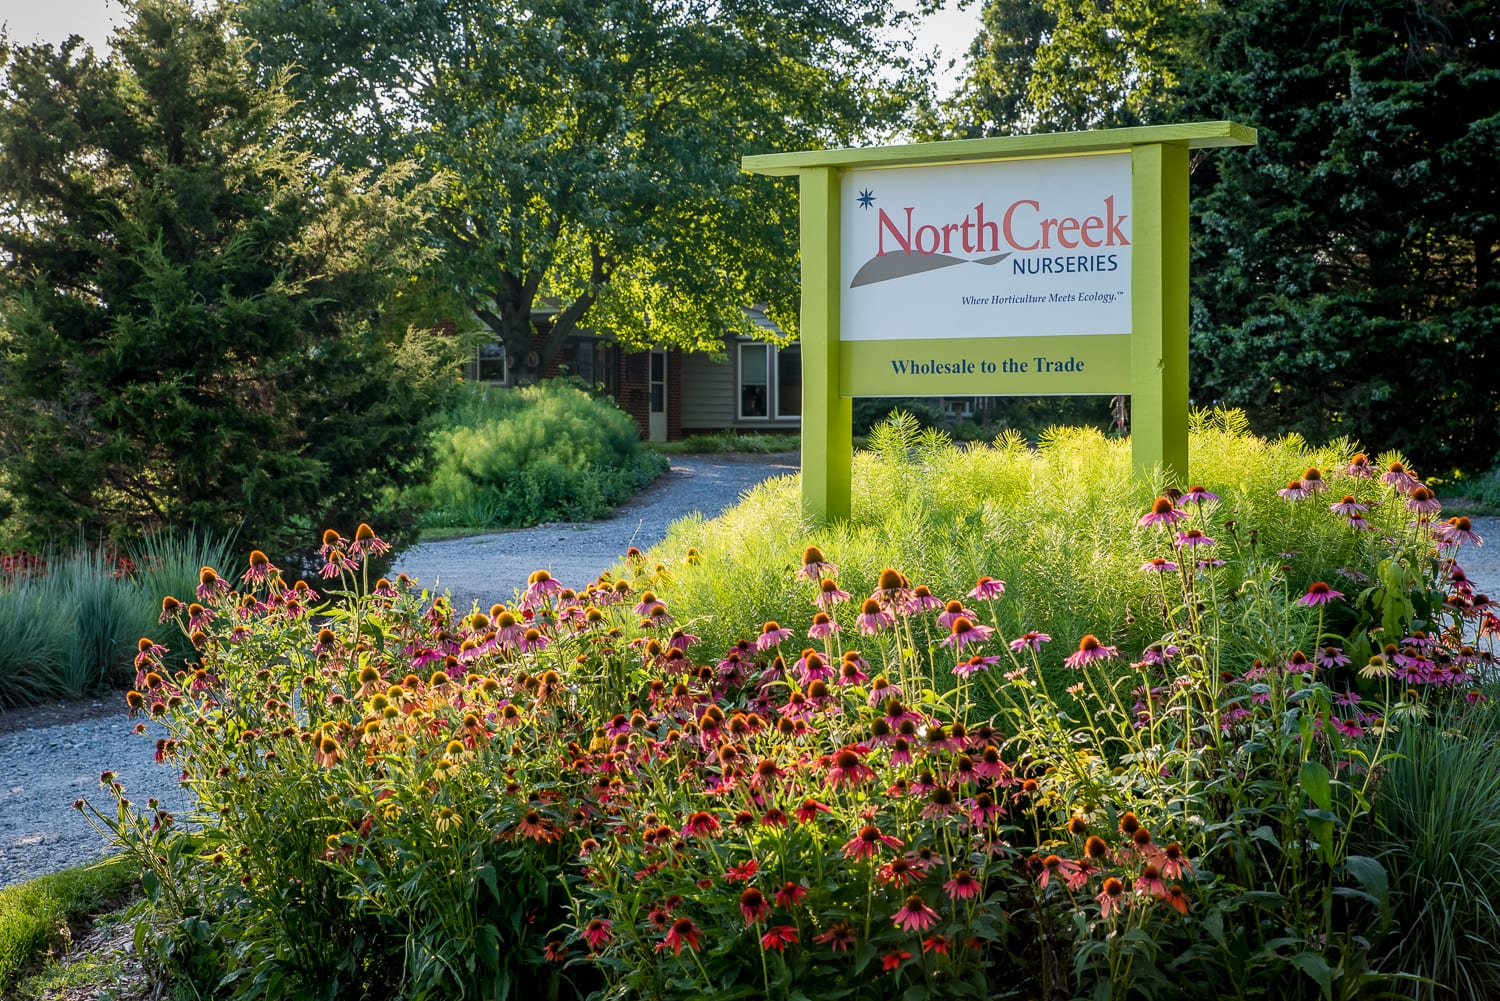 North Creek Is A Whole Propagation Nursery That Specializes In Growing Starter Plants And Plugs Of Perennials Ornamental Gres Ferns